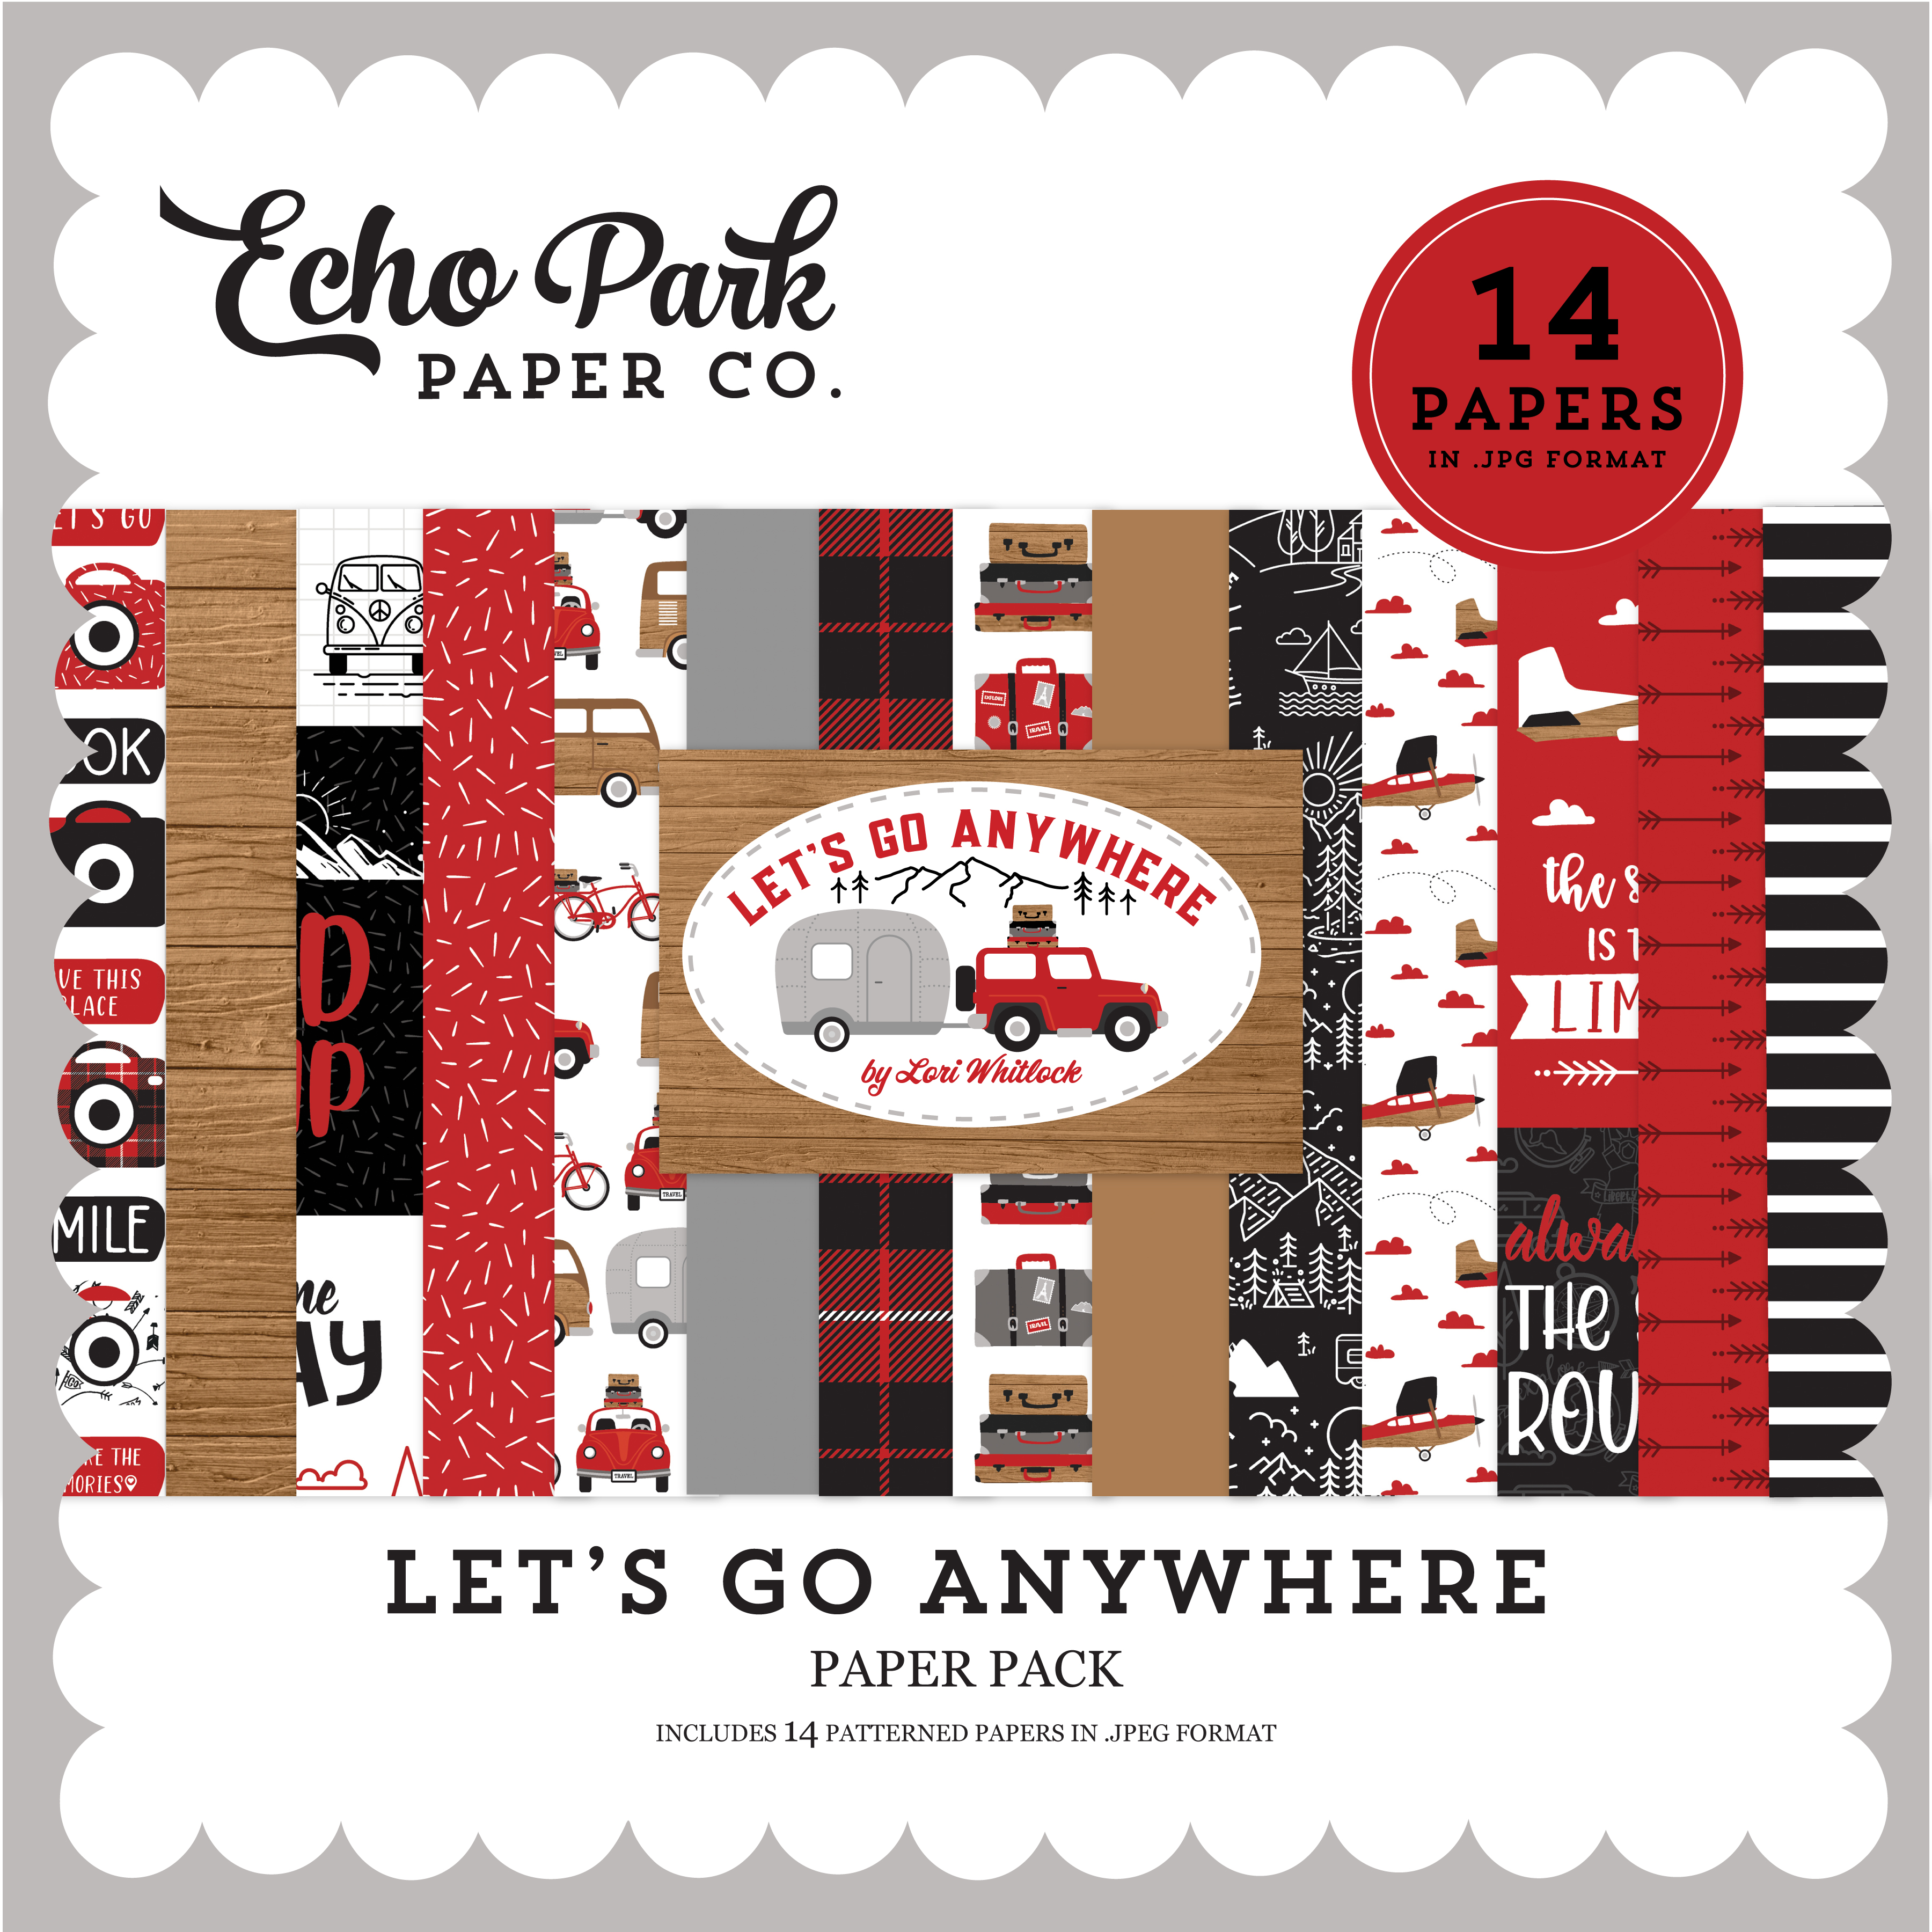 Let's Go Anywhere Paper Pack #2